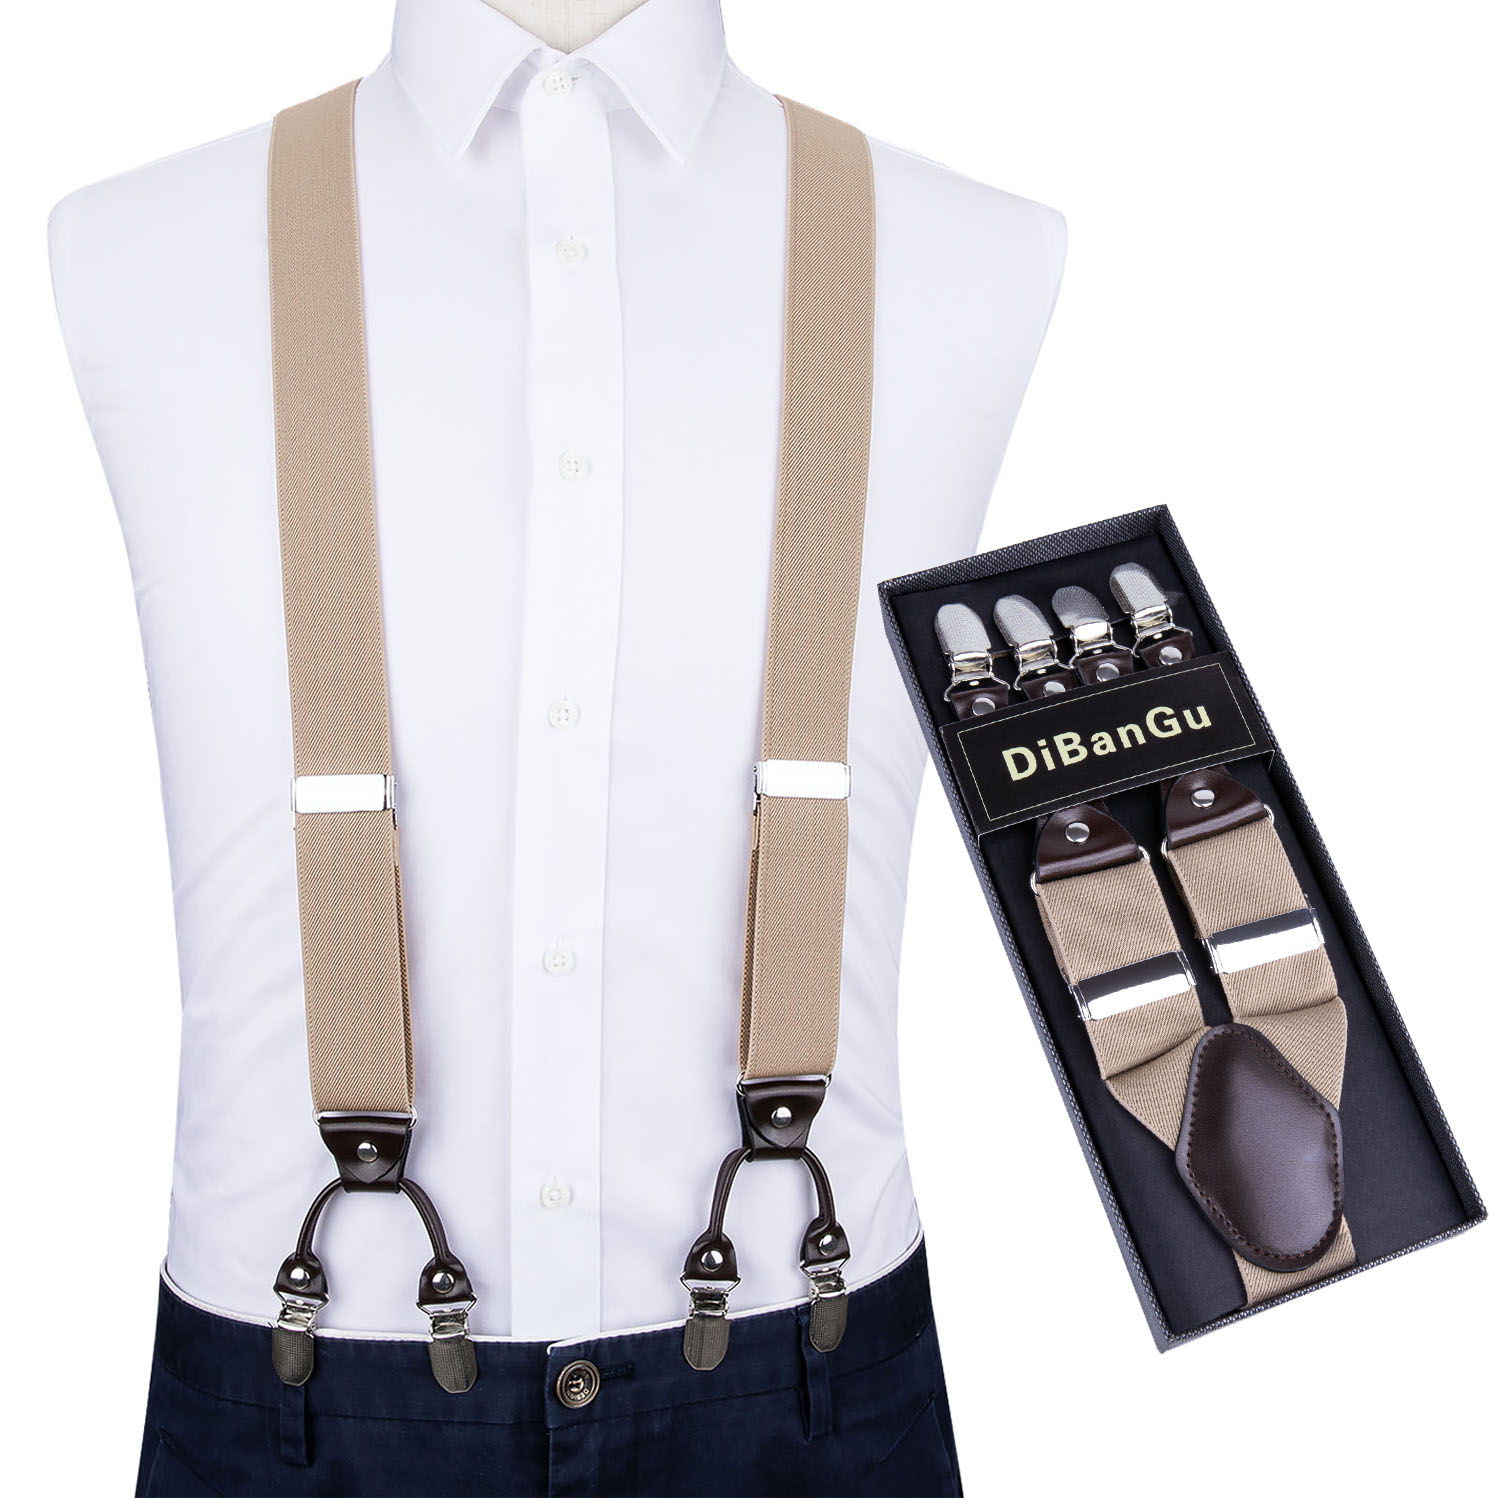 Men Khaki Elastic Suspender Genuine Leather 6 Clips Brace Male Vintage Casual Wedding Party Trousers Fashion Suspenders DiBanGu